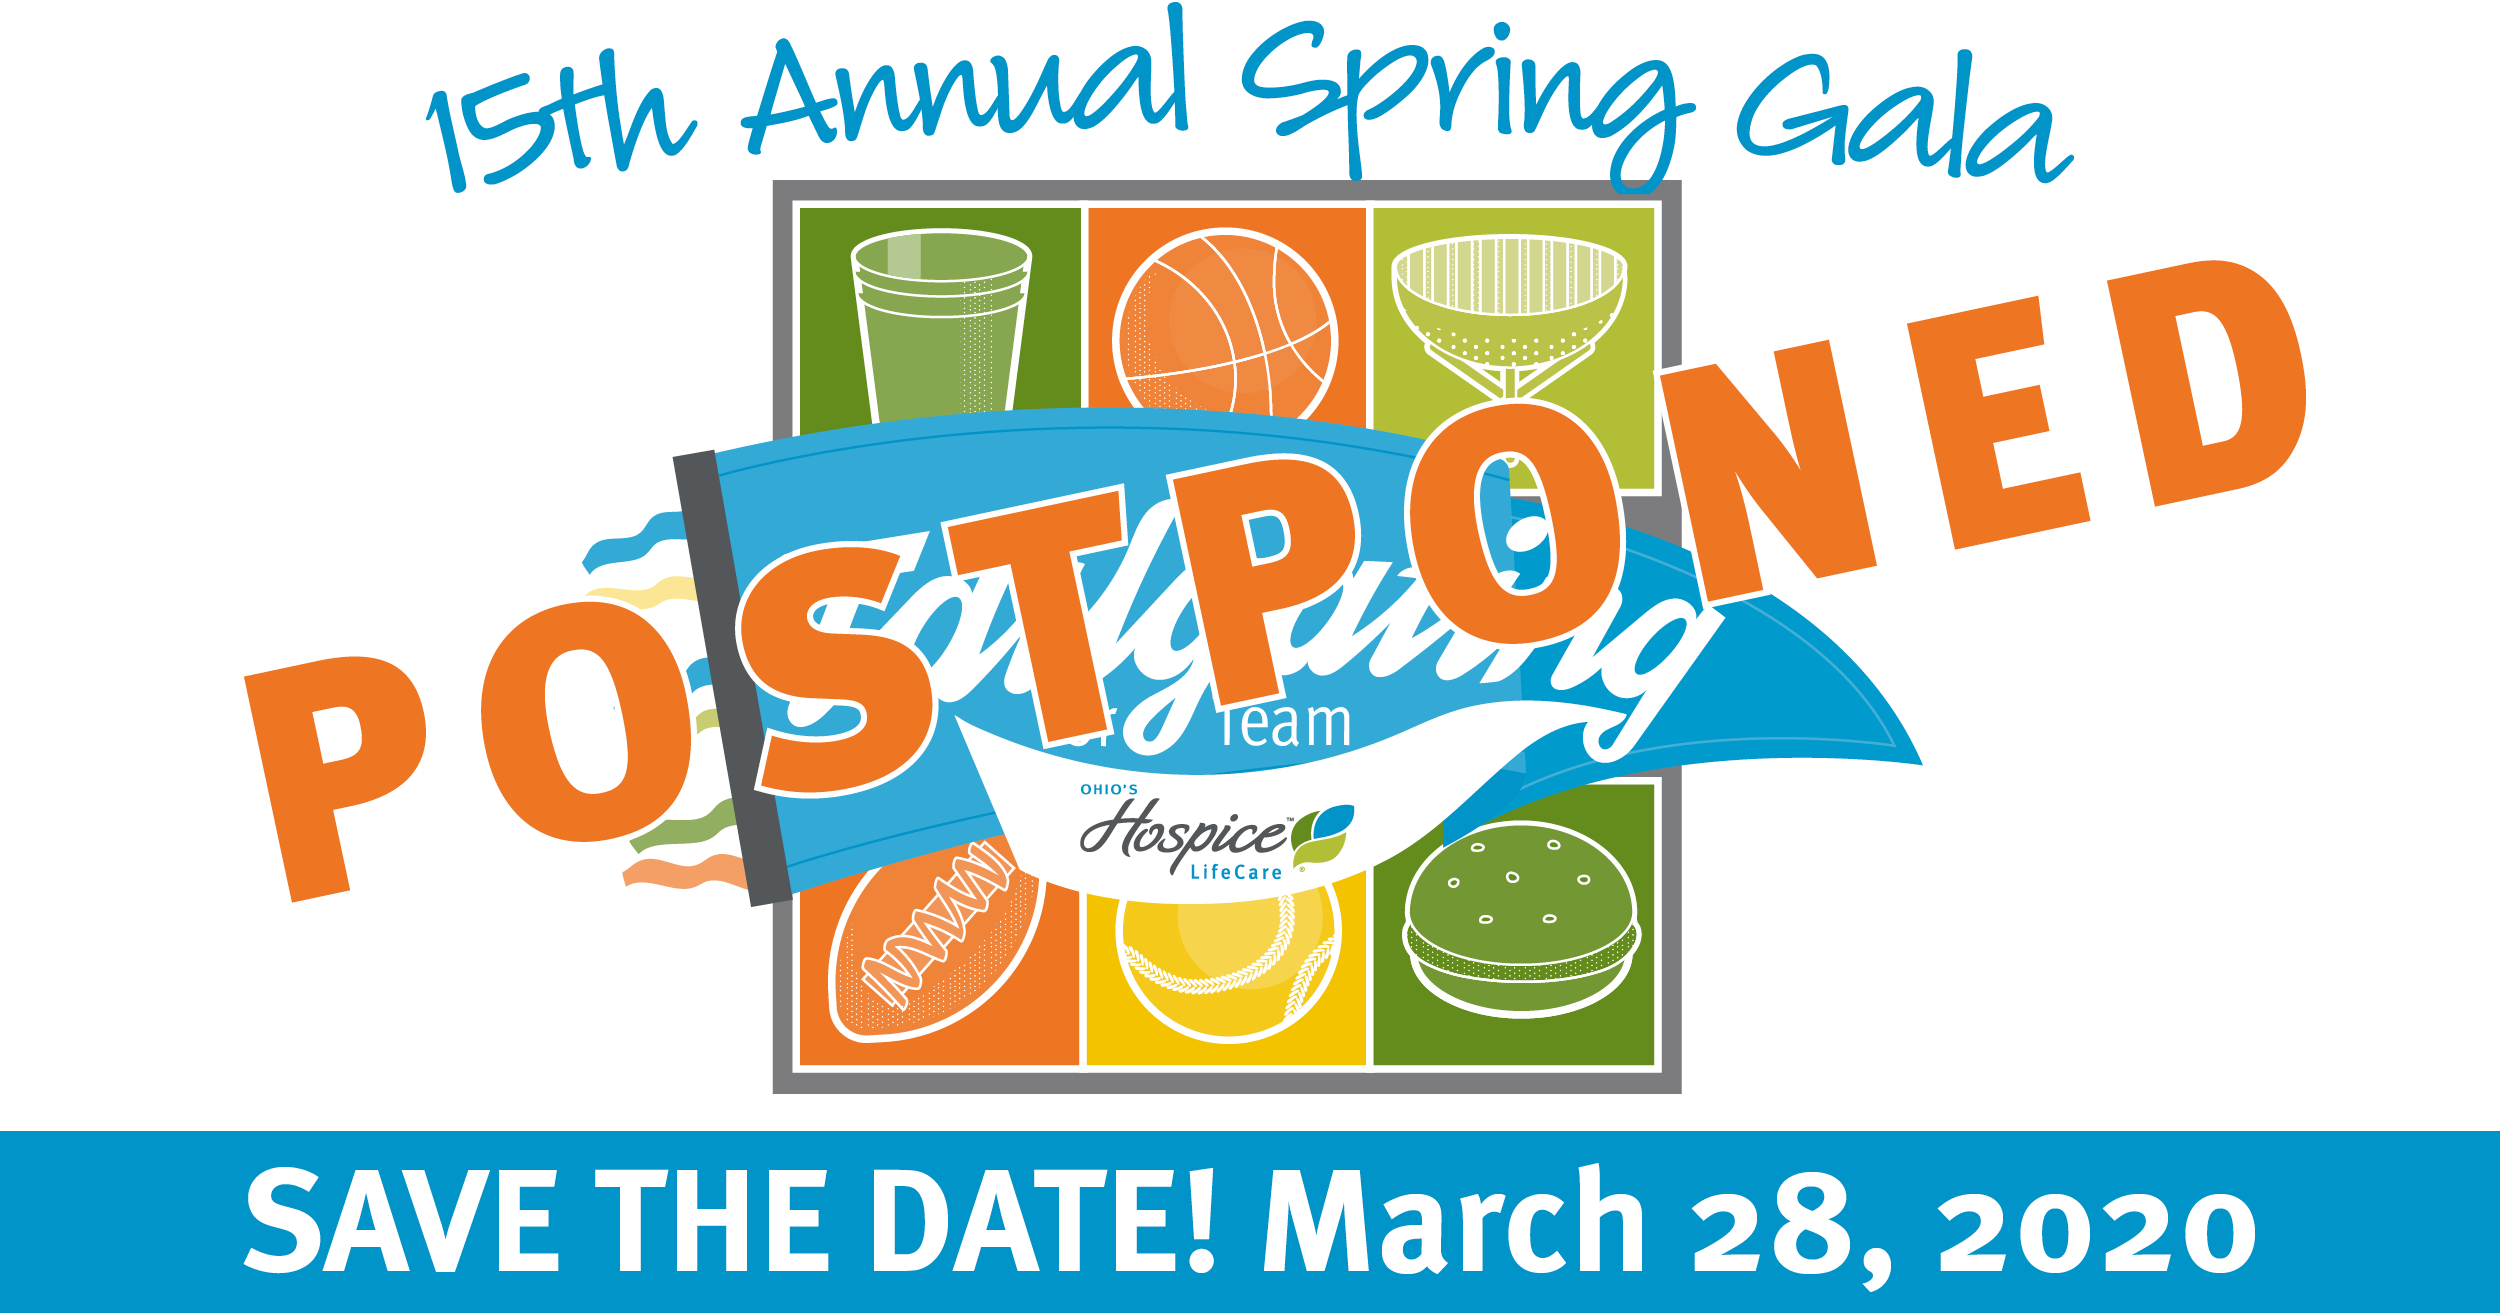 Spring Gala Save The Date Postponed